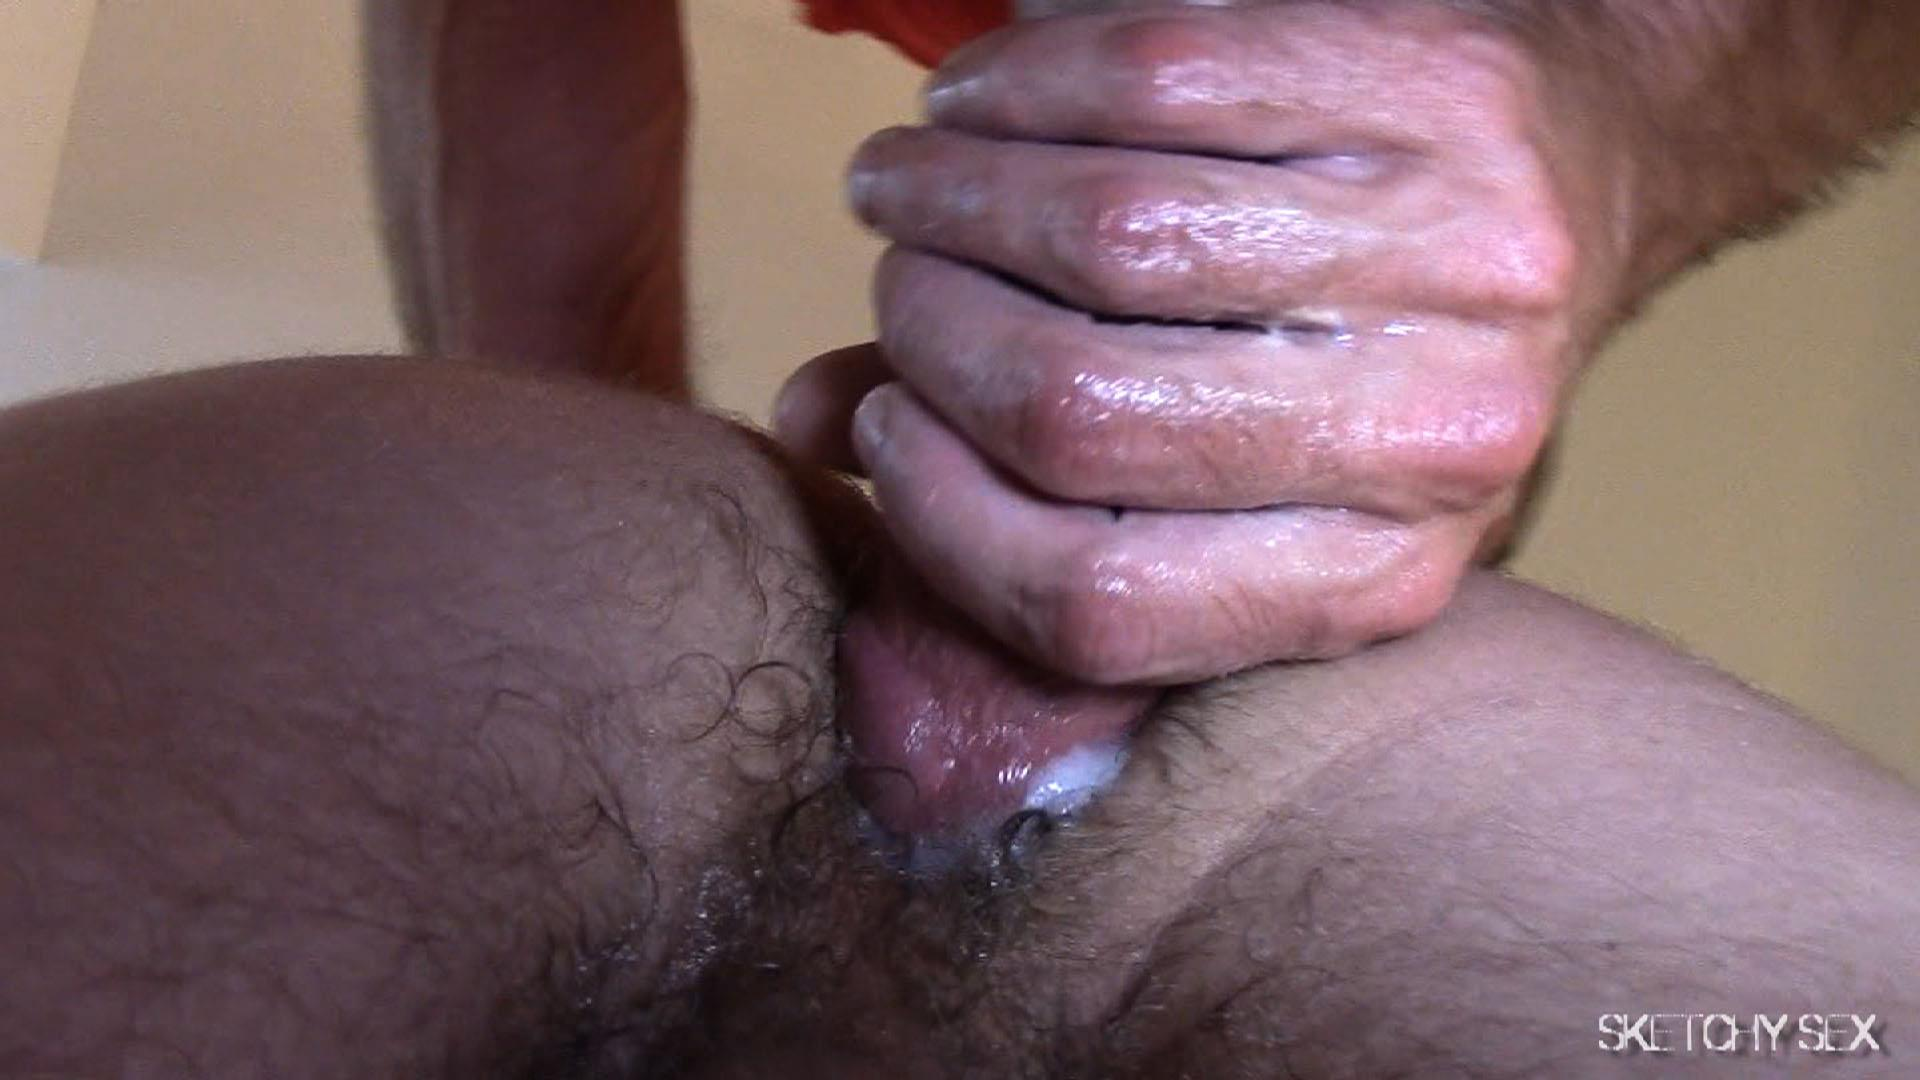 "Sketchy Sex Nate Getting Fucked Bareback By A 10 Inch Craigslist Cock Amateur Gay Porn 10 Taking A 10"" Craigslist Cock Bareback While The Roommate Watches"